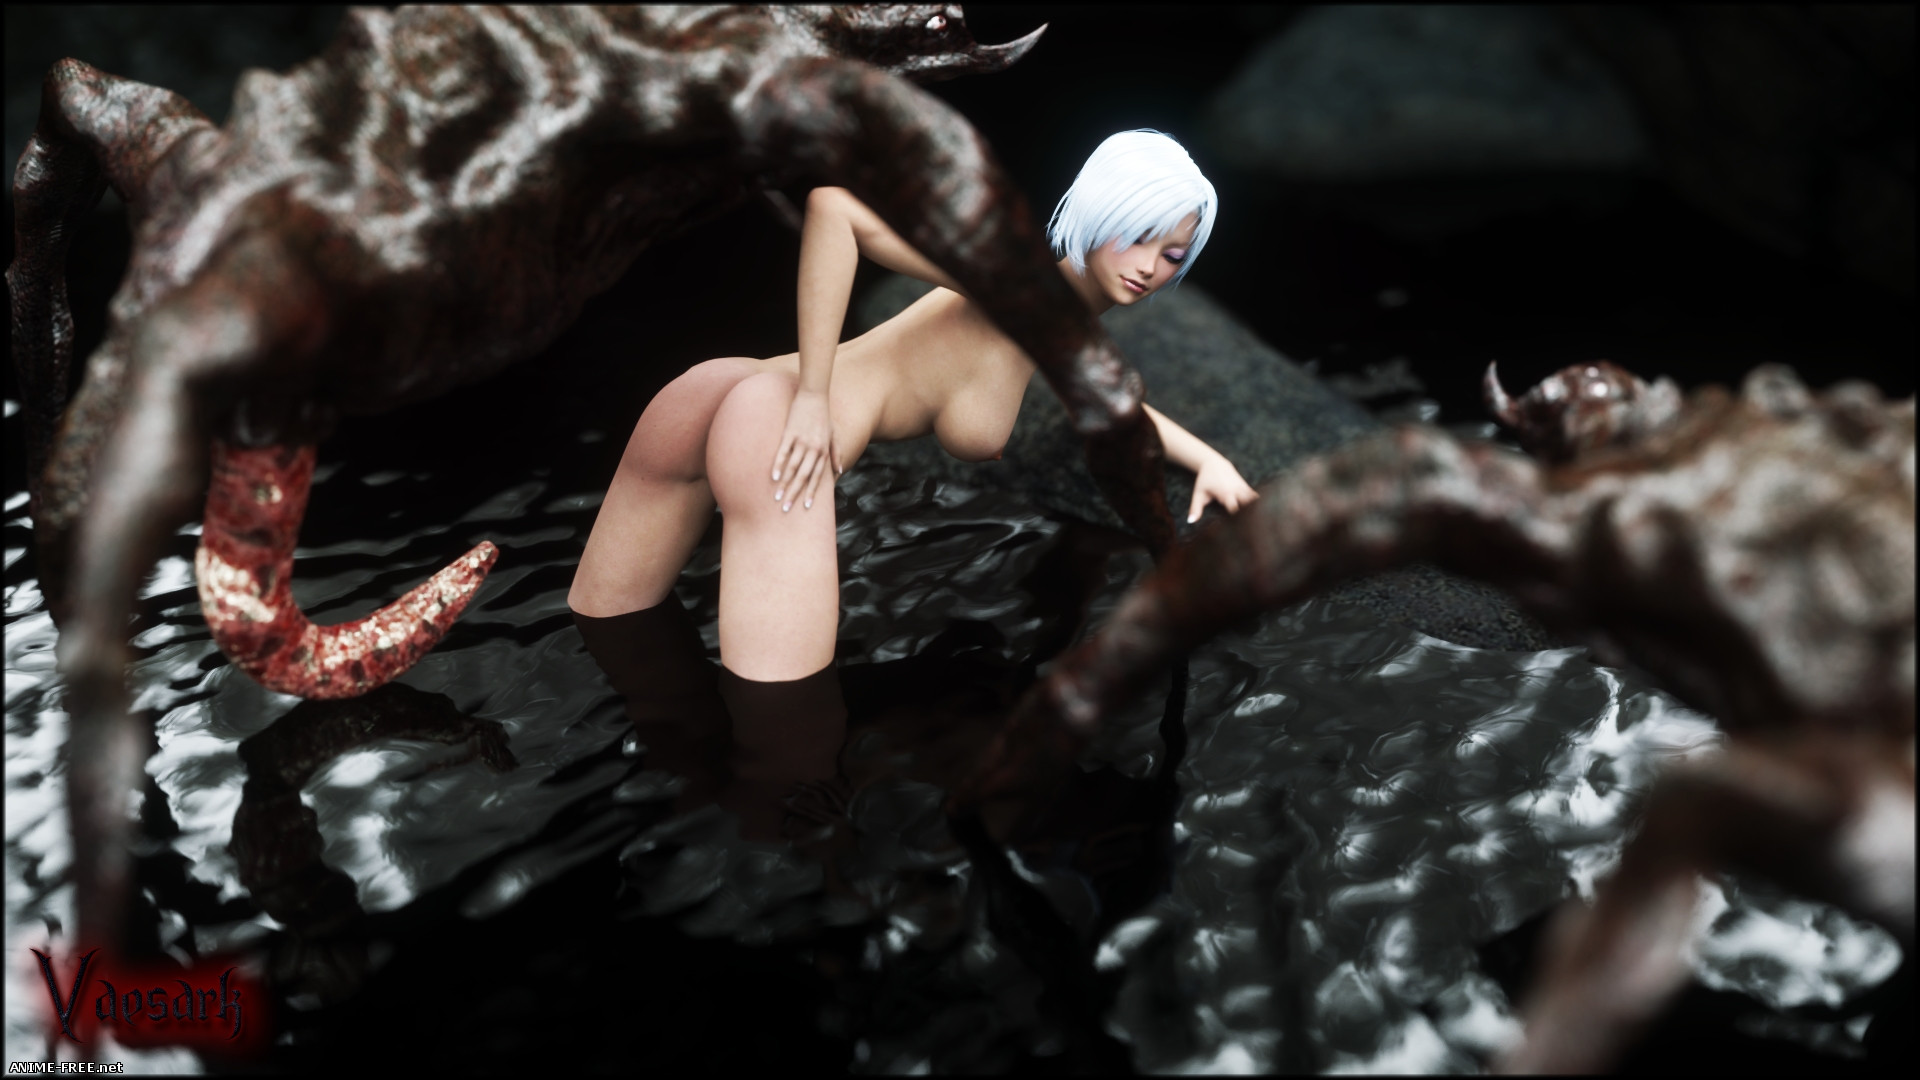 Collection 3d art Vaesark (Часть 4) [Uncen] [3DCG] [JPG,PNG] Hentai ART